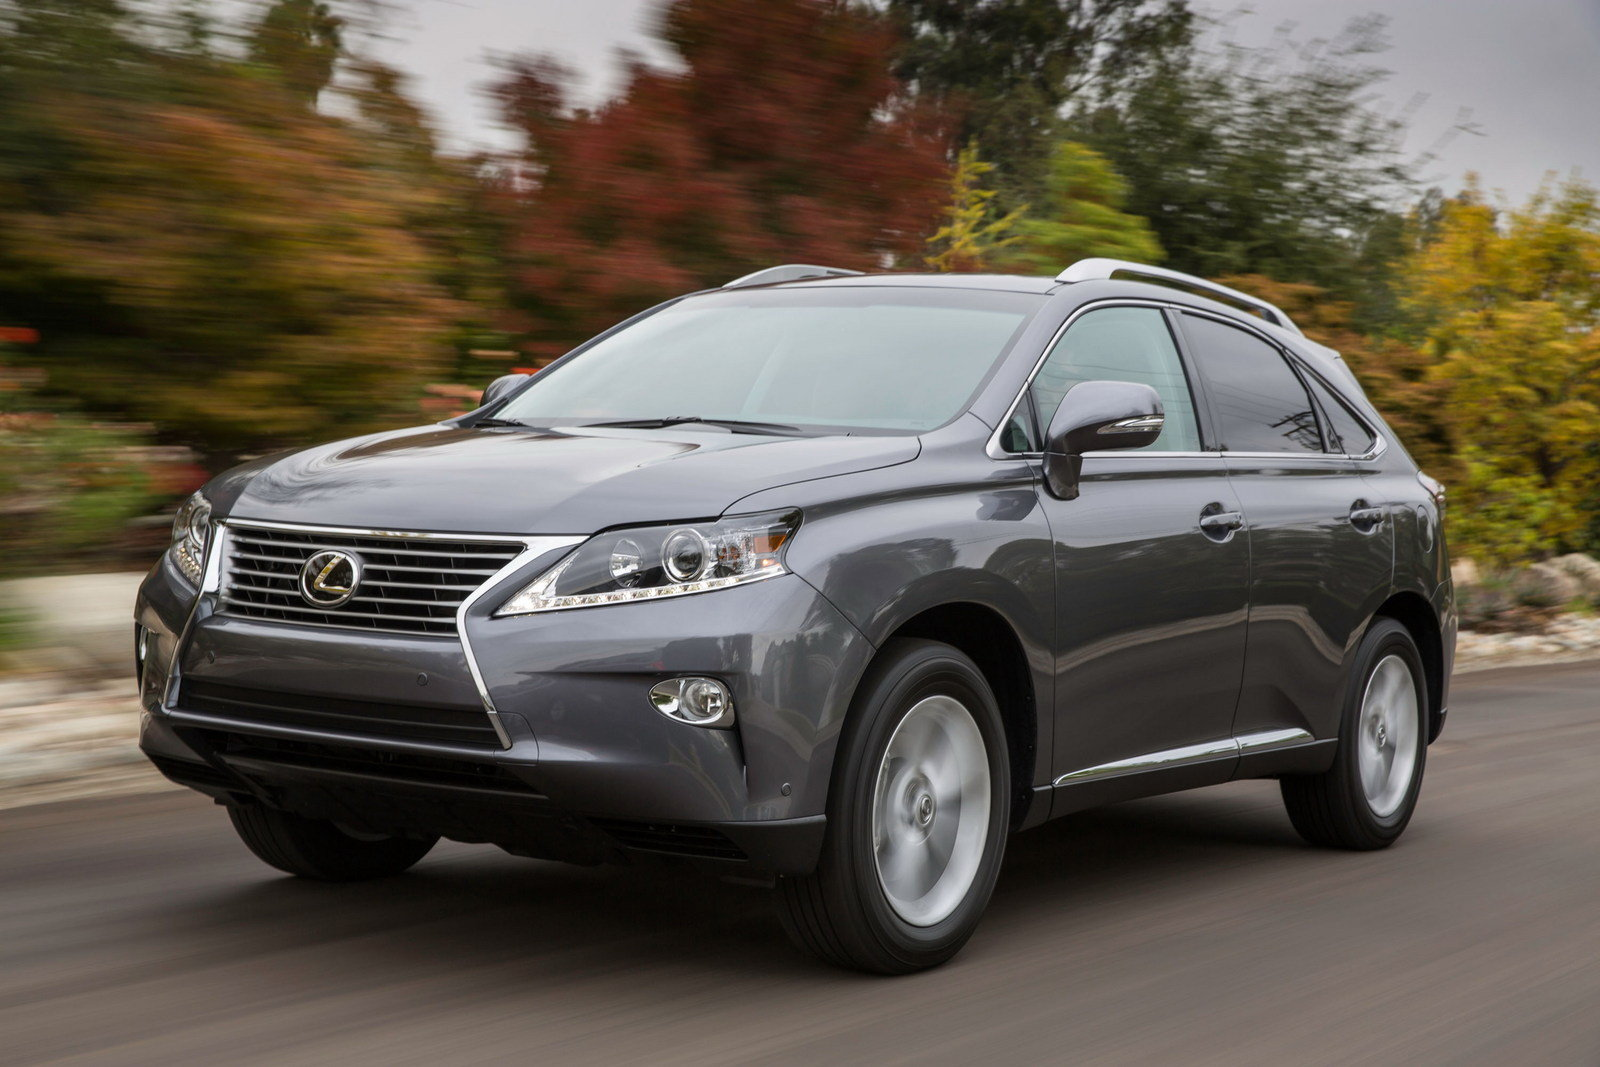 2015 lexus rx 350 picture 543885 car review top speed. Black Bedroom Furniture Sets. Home Design Ideas